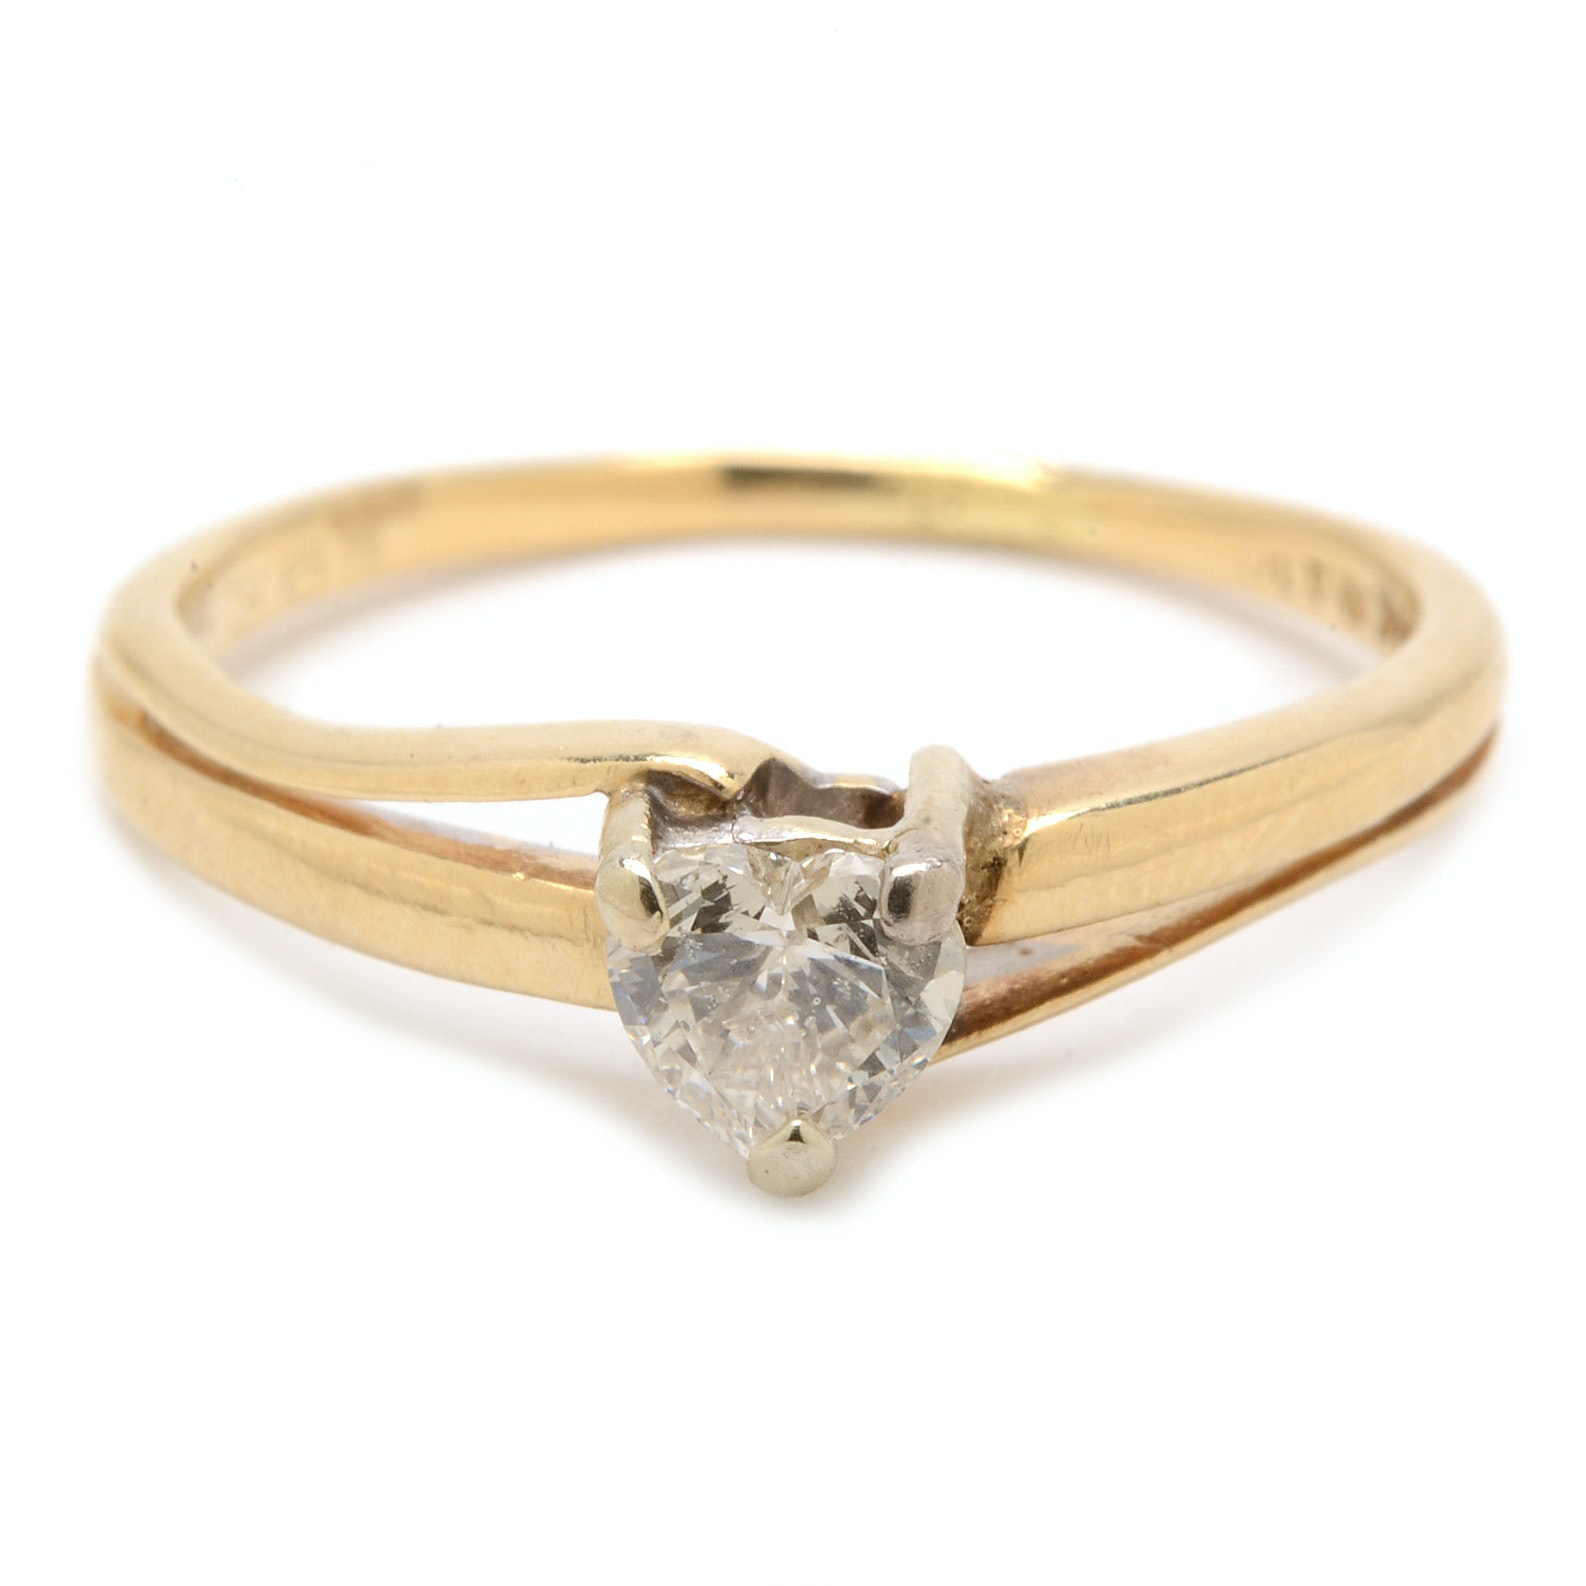 14K Yellow Gold Solitaire Heart-Cut Diamond Ring